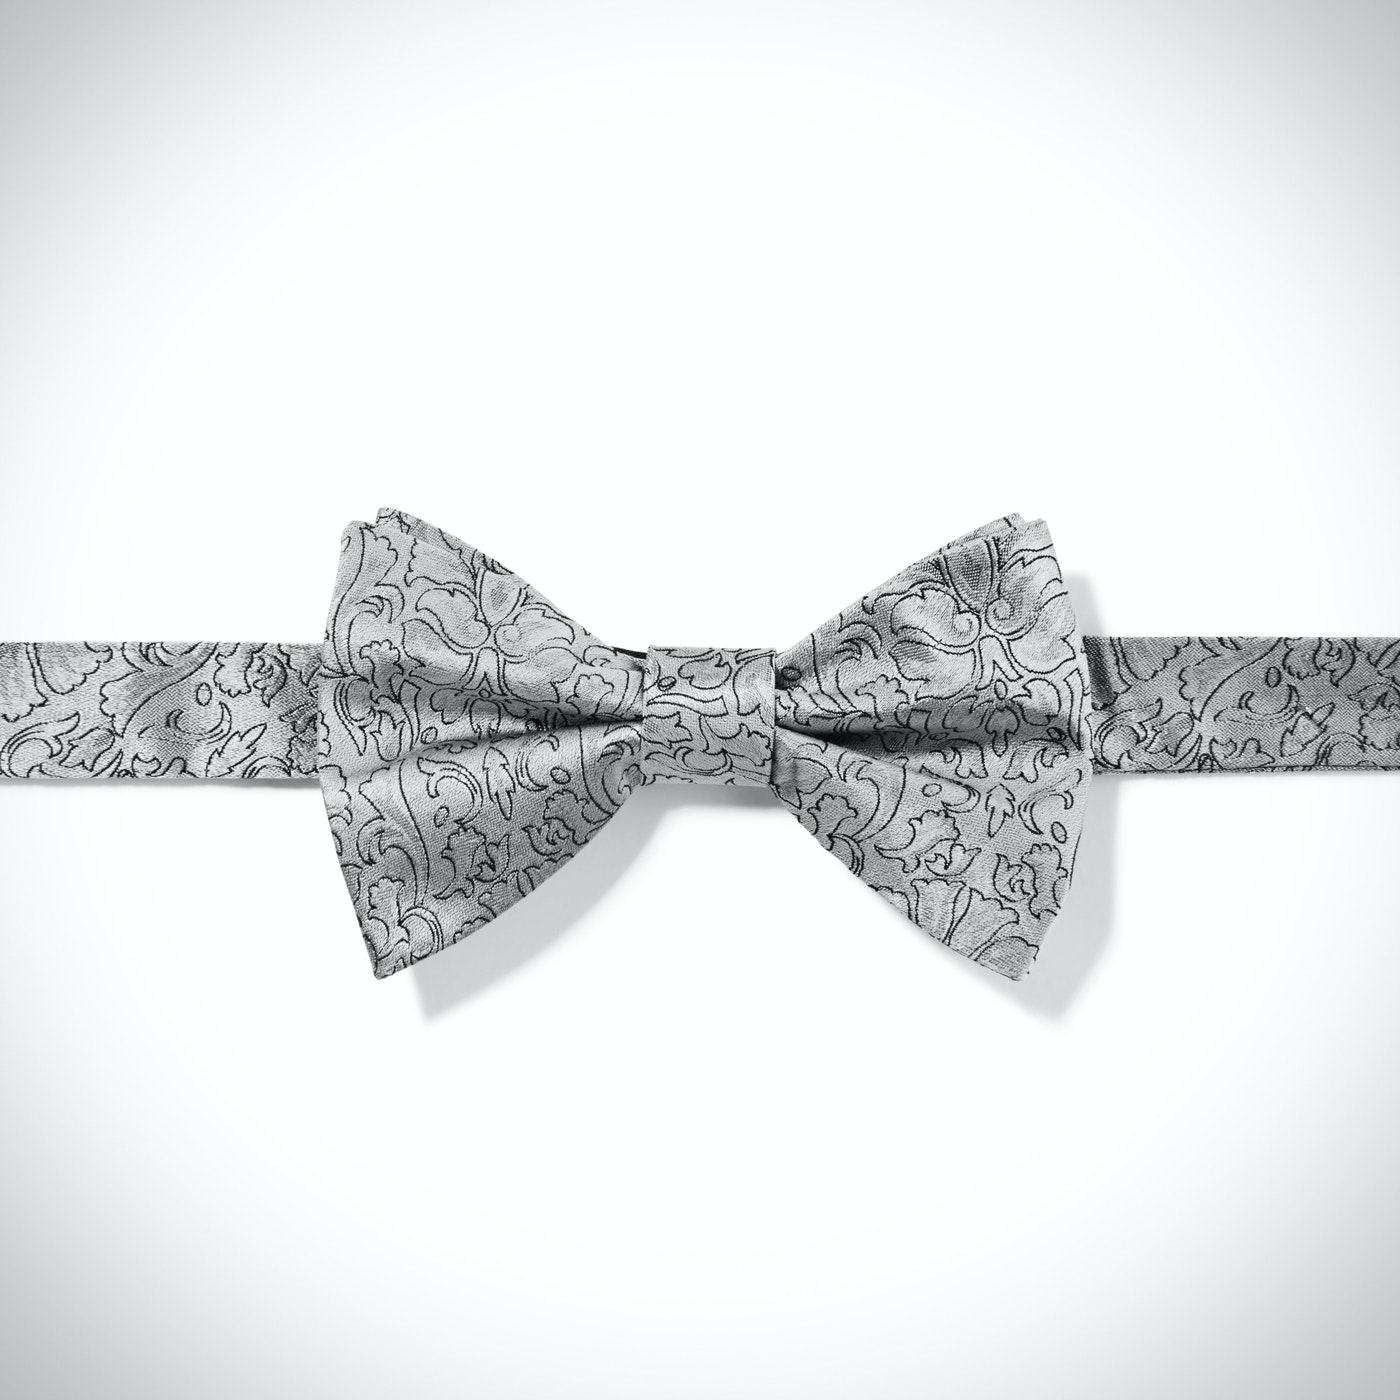 Silver Etched Floral Bow Tie